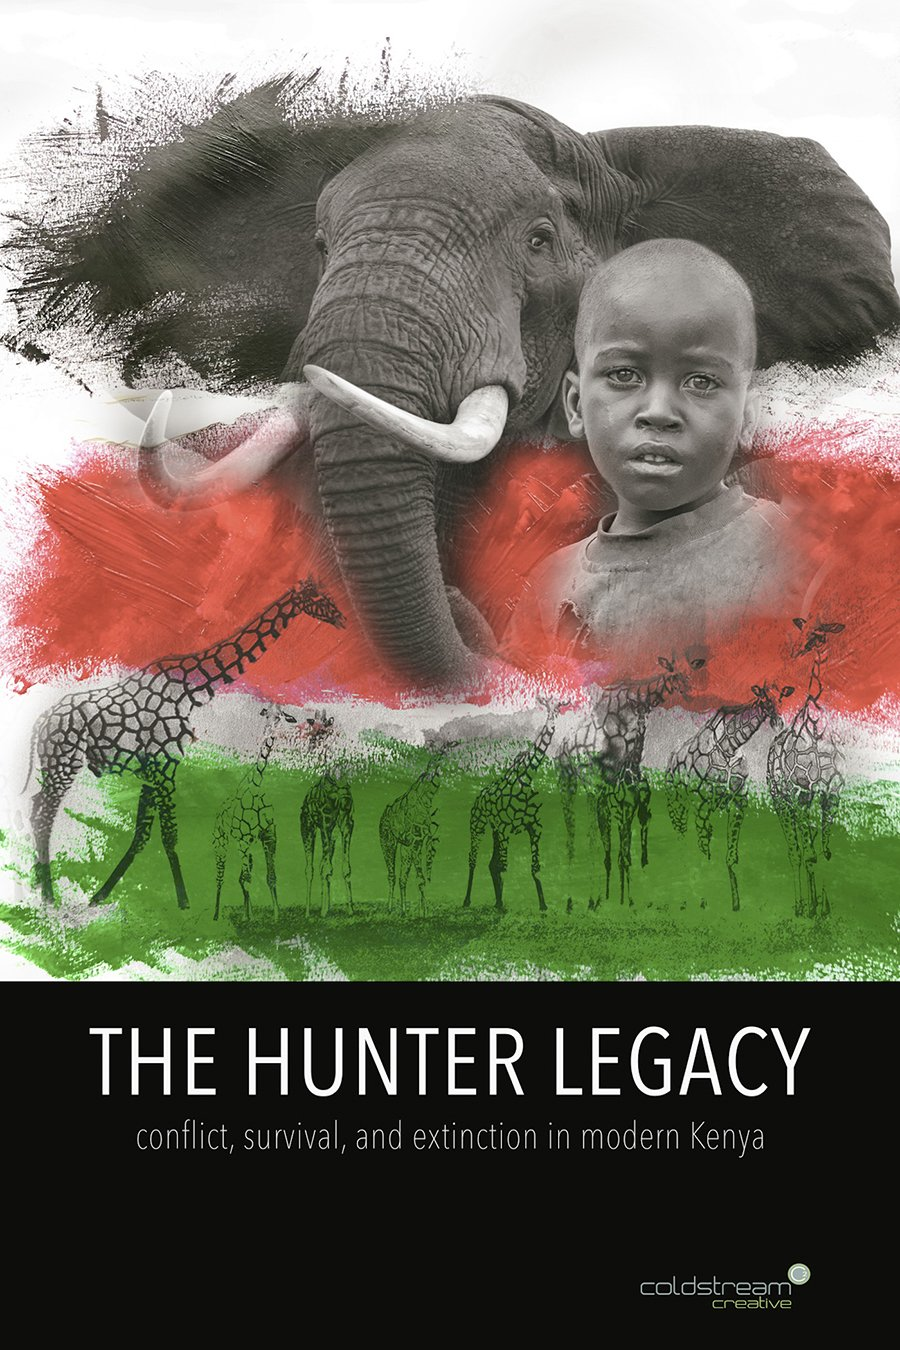 Film poster showing White Red Green horizontal areas with an image of an elephant, a young boy, giraffe and animals--the bottom is black with title of the film.